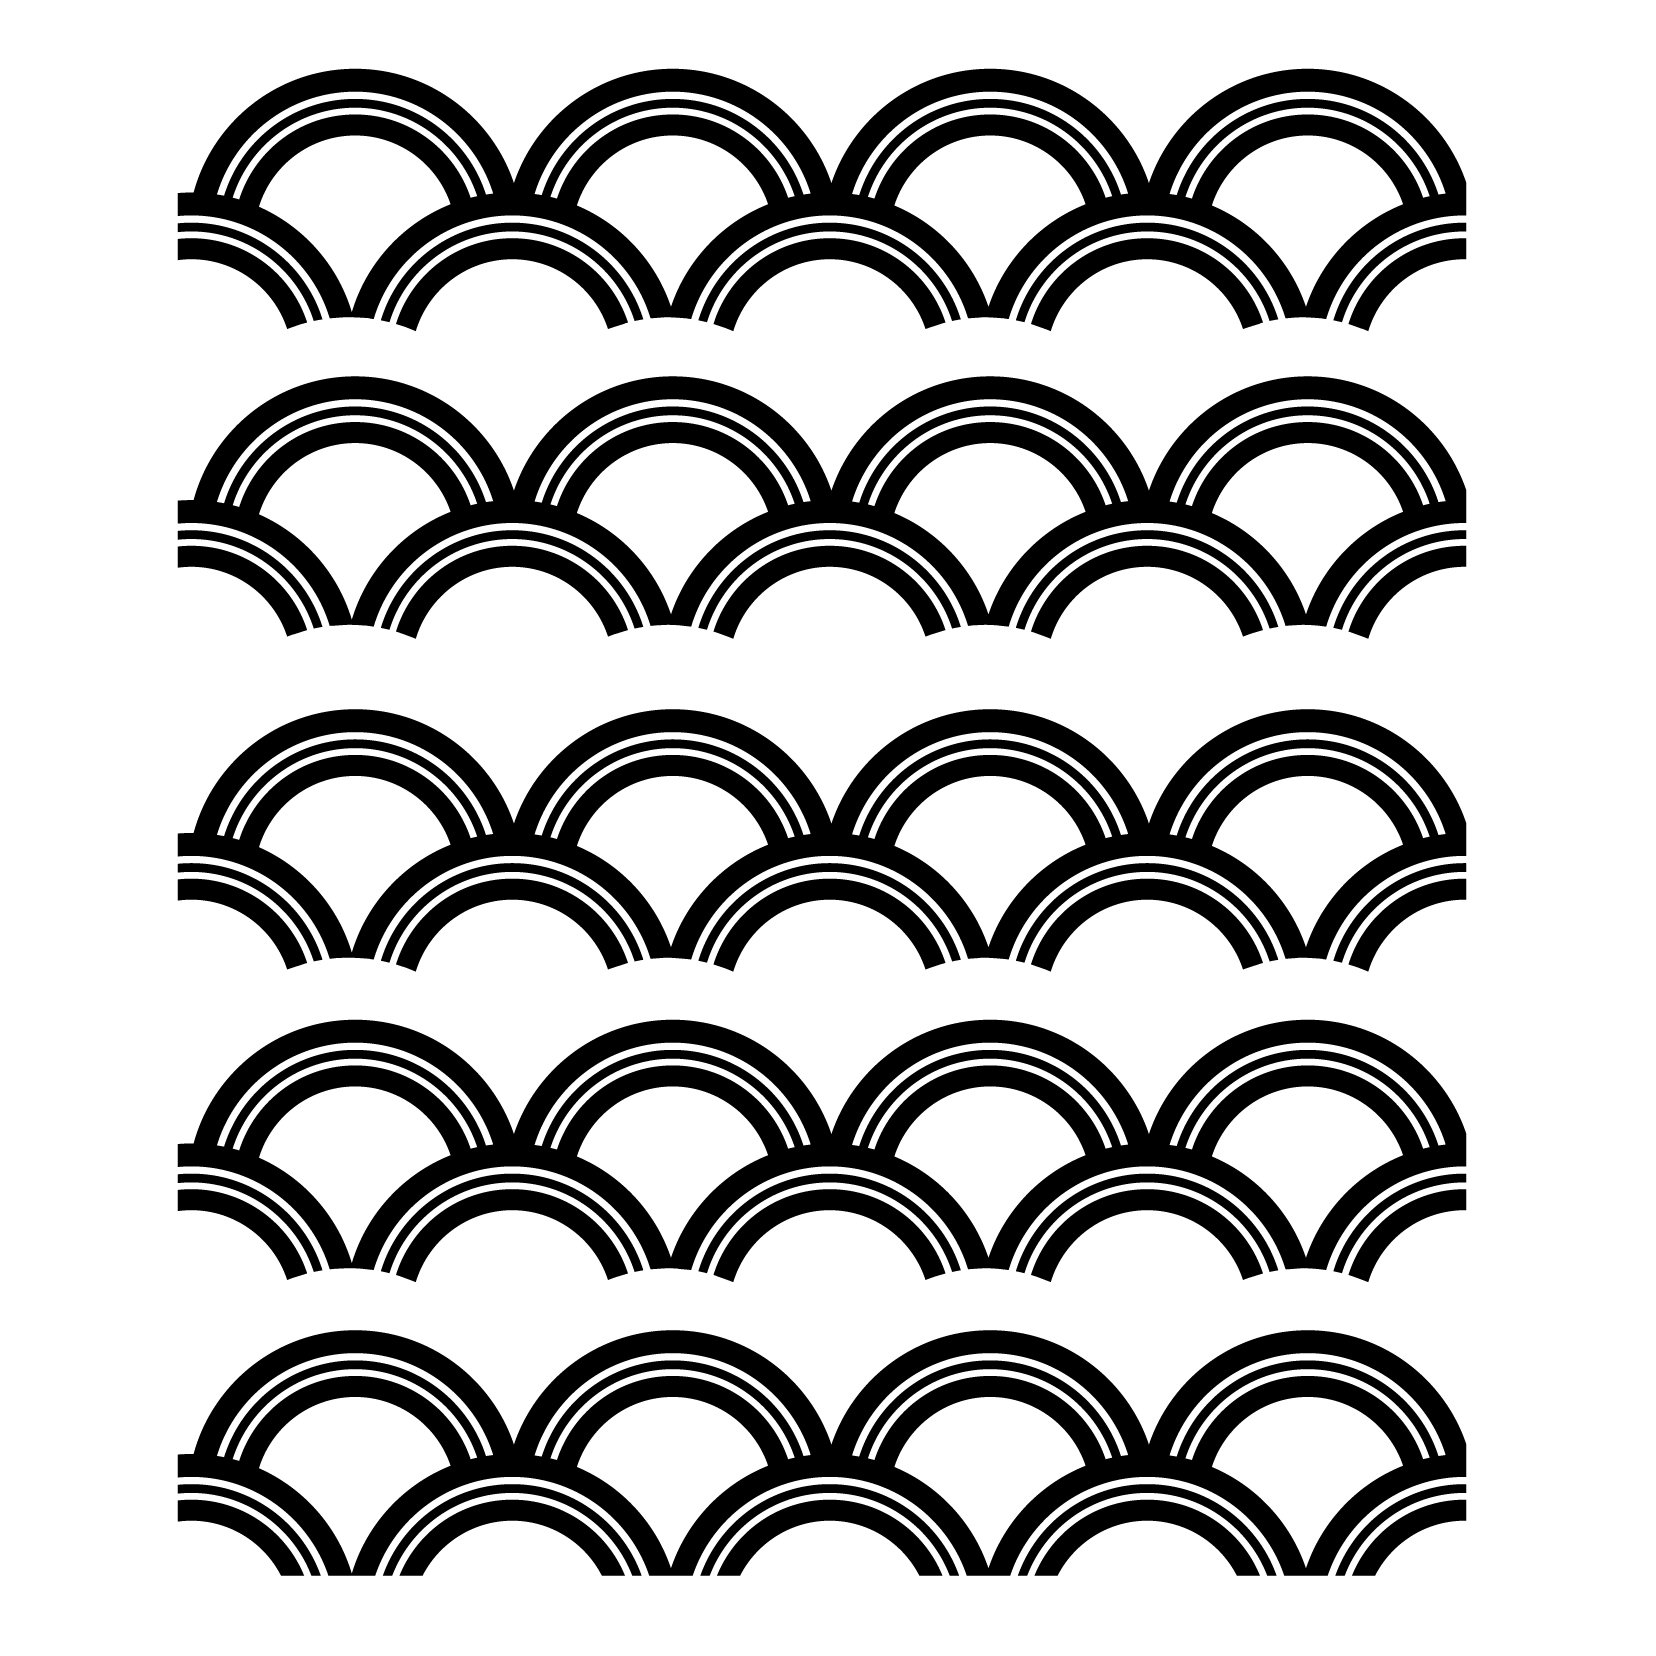 Art Deco Scallop Pattern - Black - Custom Vinyl Wall Art Decal Decor, Wall Decor, for Homes, Offices, Kids Rooms, Nurseries, Schools, High Schools, Colleges, Universities, Interior Designers, Architects, Remodelers